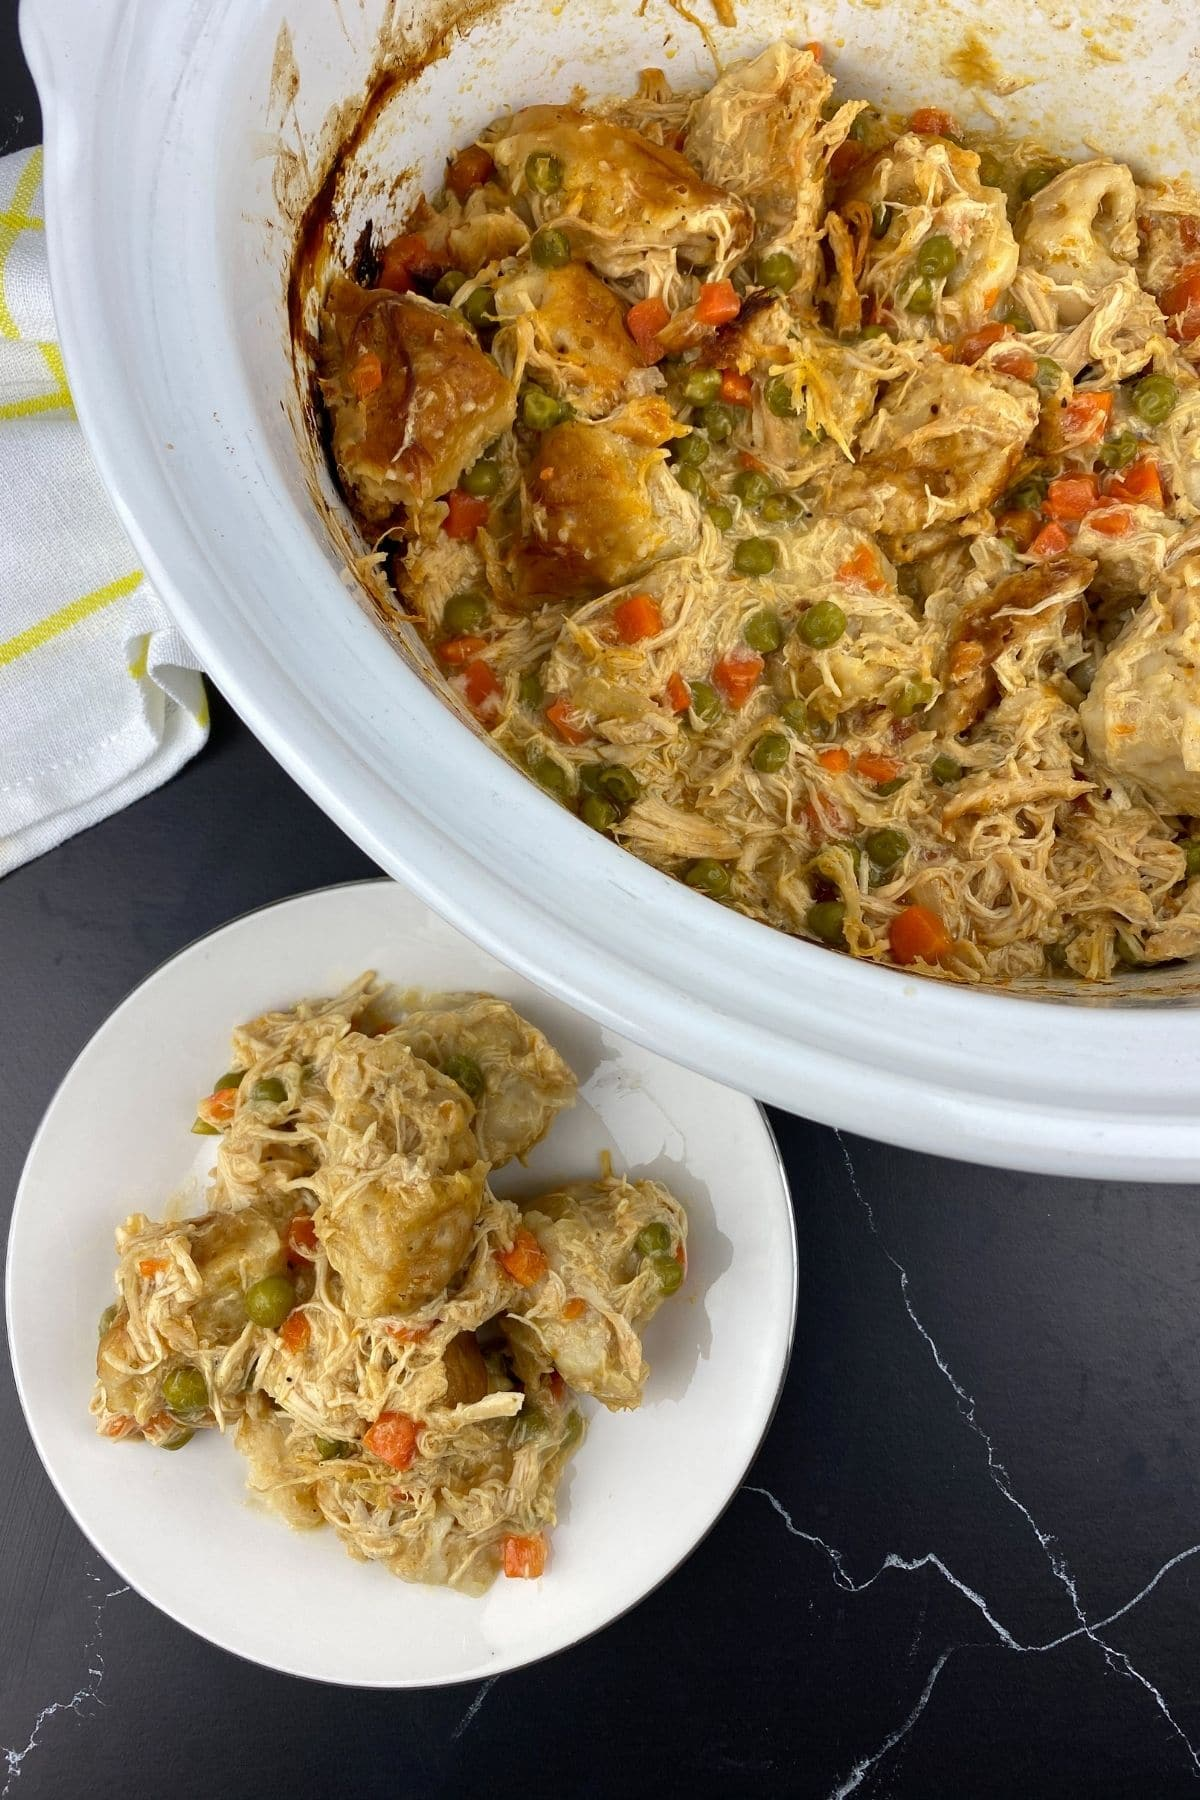 Chicken and dumplings in white slow cooker by plate